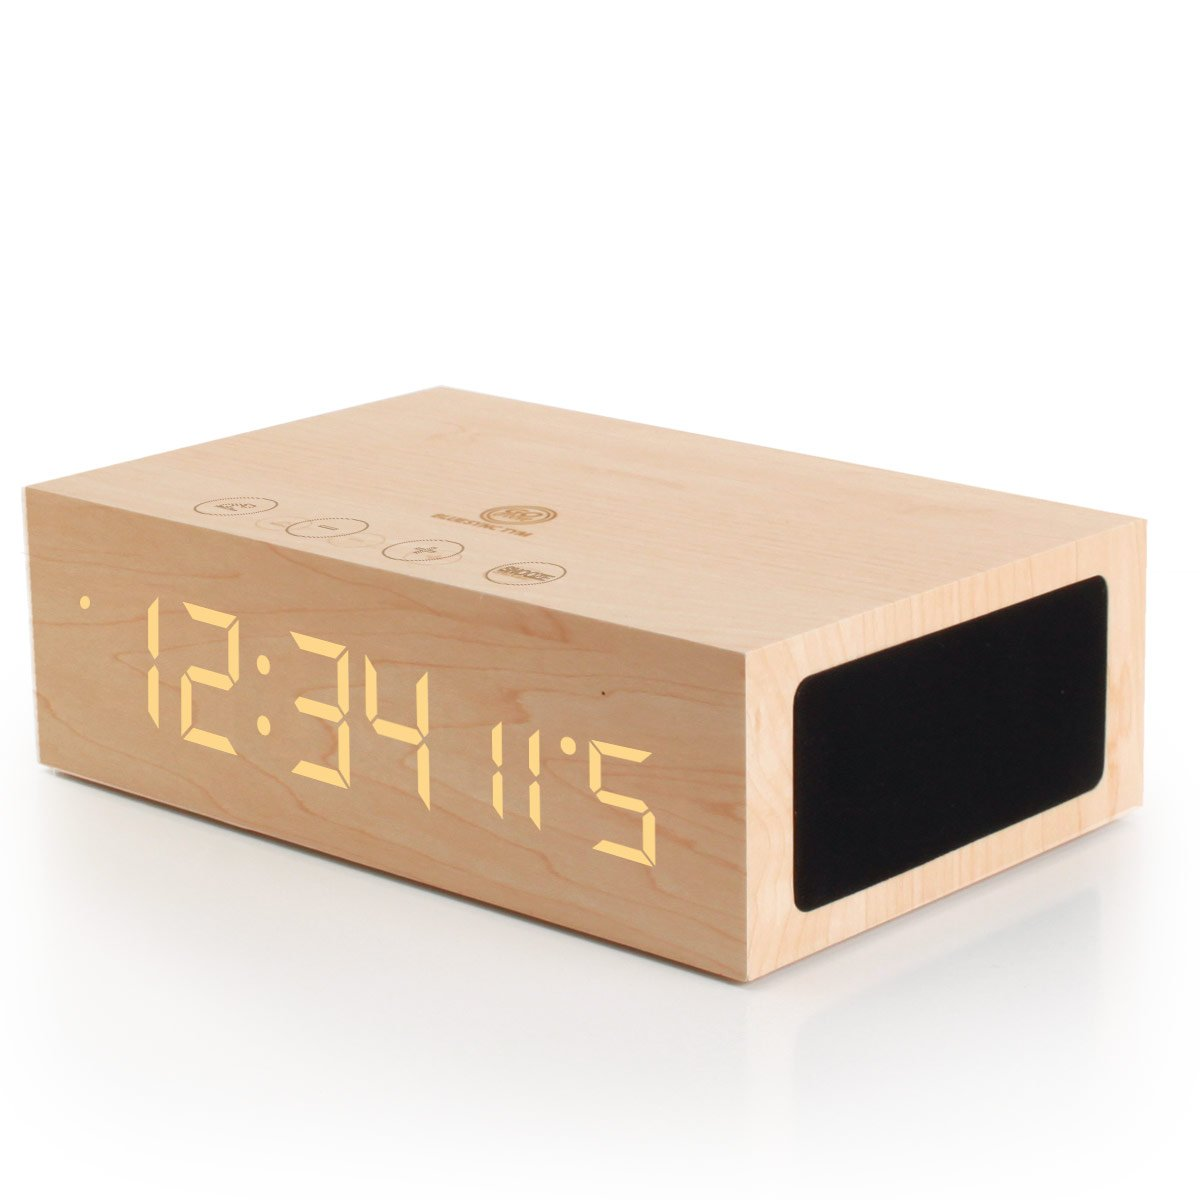 Bluetooth Digital Alarm Clock Speaker by GOgroove - TYM Wood Alarm Clock w/Built in Microphone, LED Time & Date Display, Paired Streaming or AUX for Phones, MP3 Players, Tablets (Light Stain)